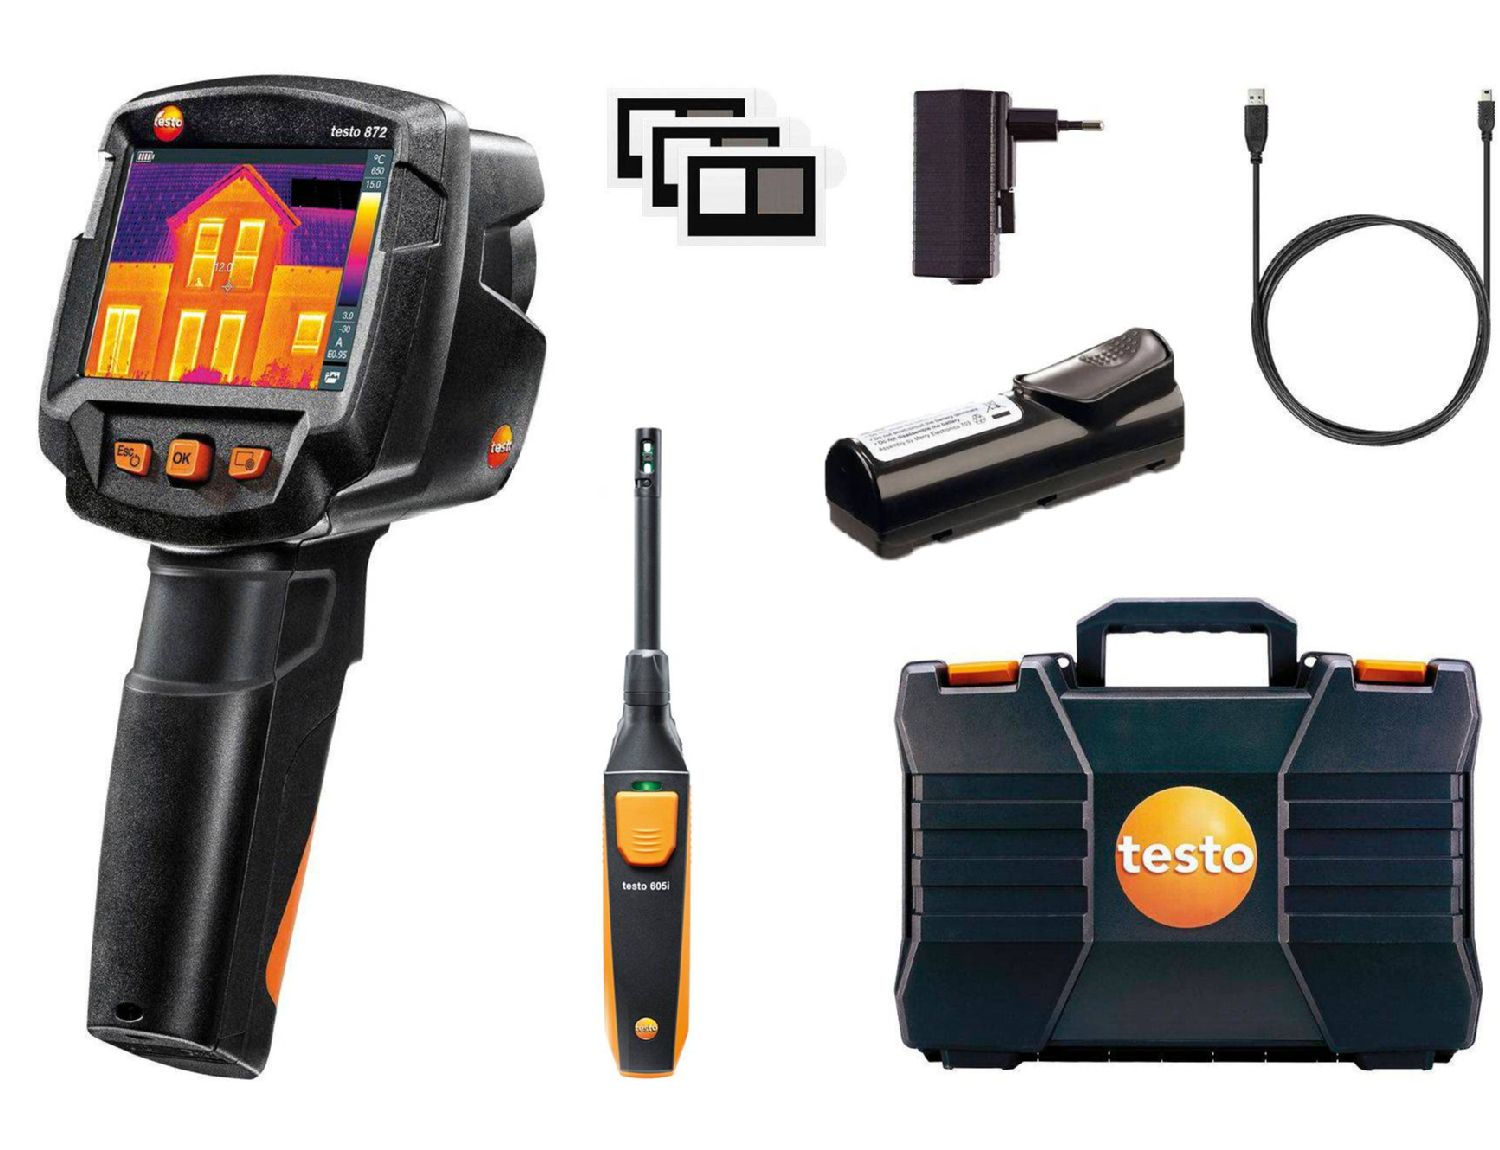 testo-872-building imspection kit - Kit image.jpg